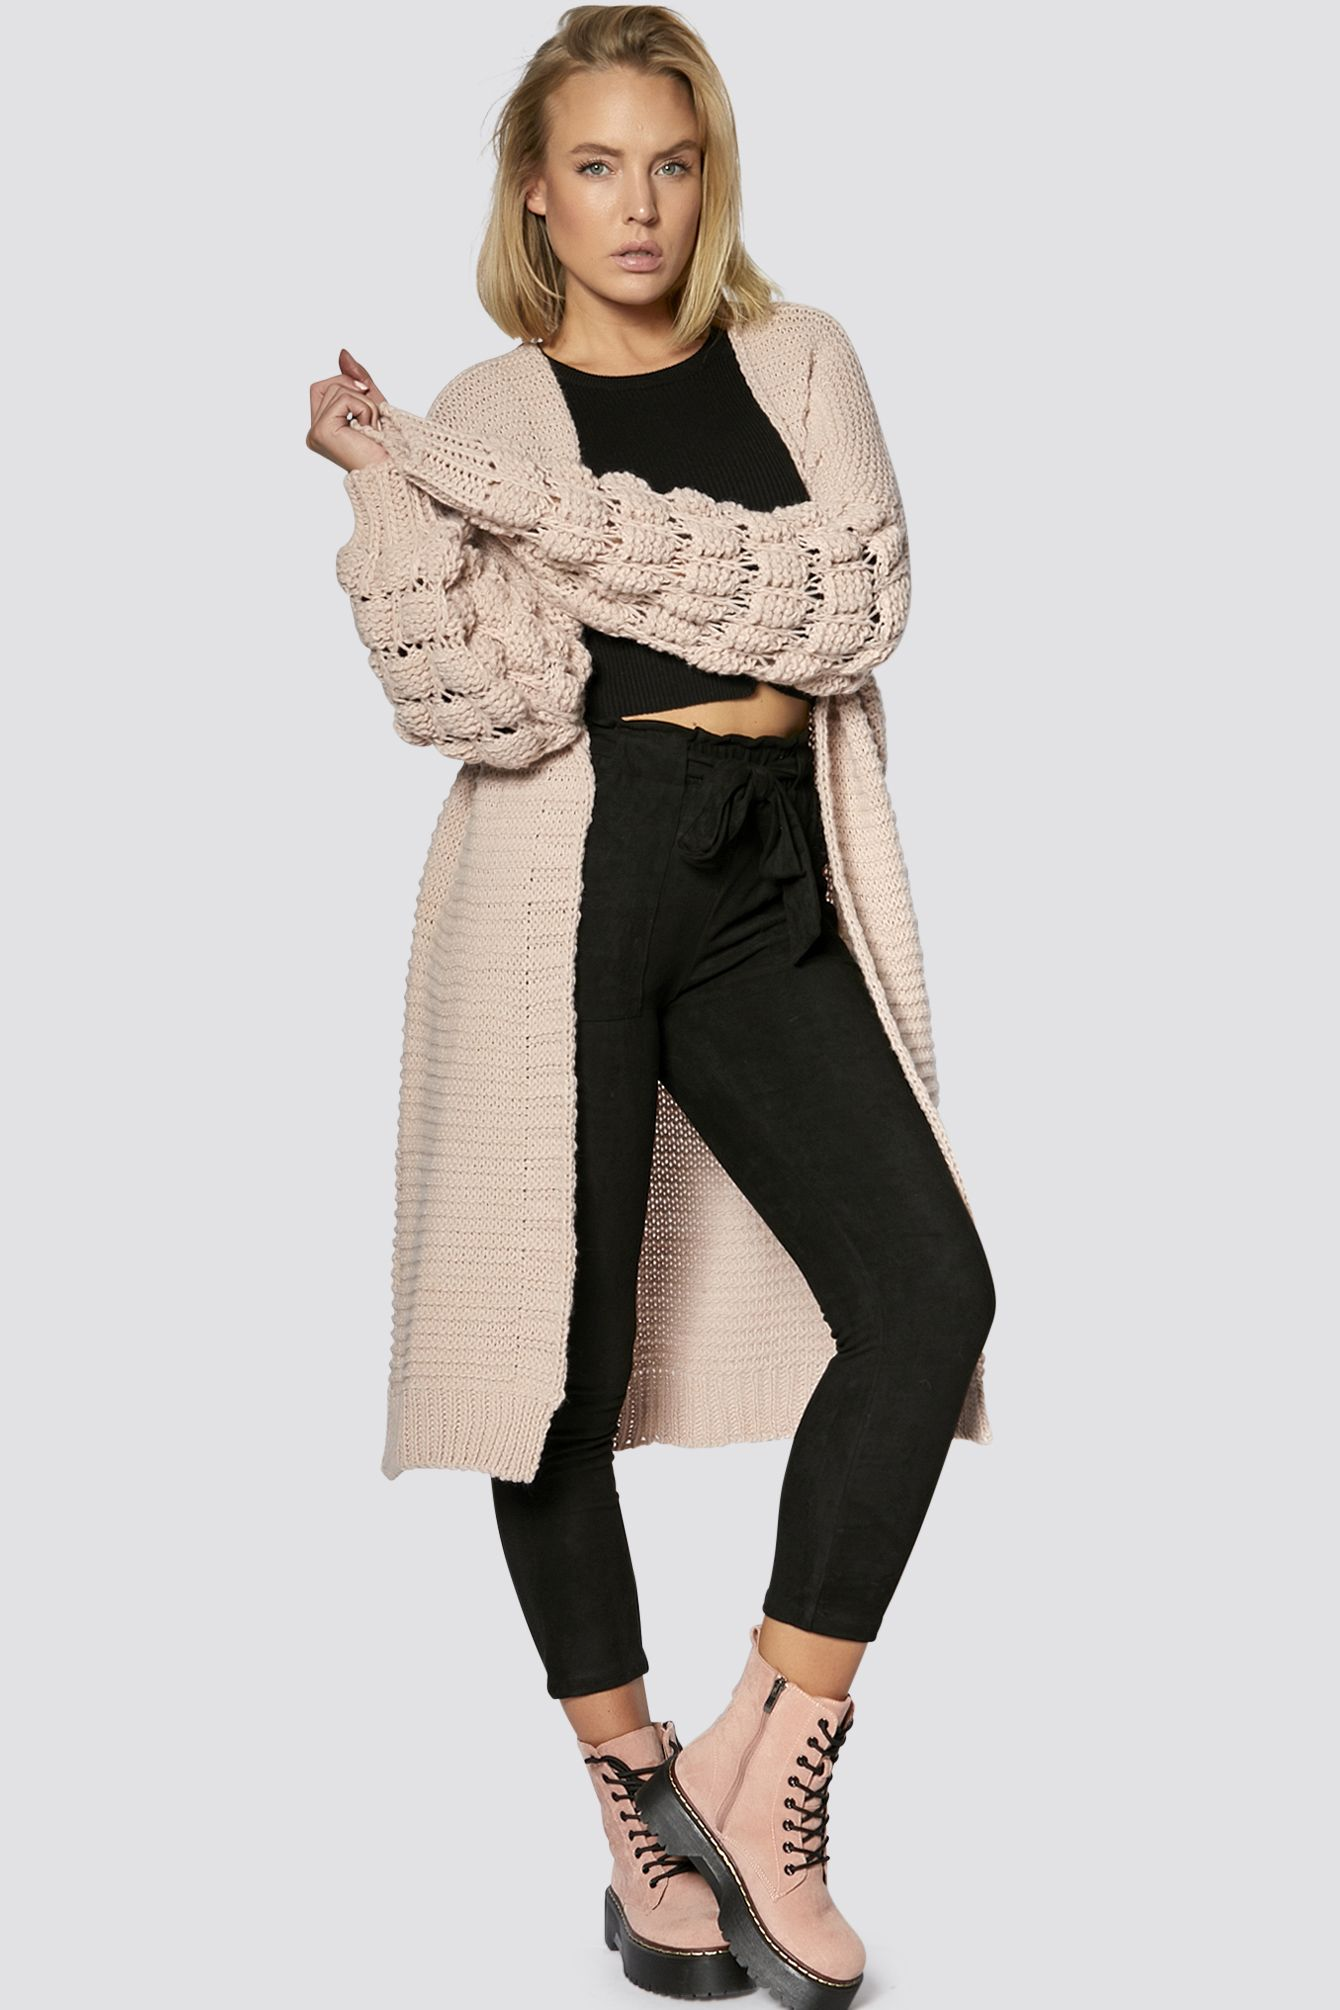 Bobble Sleeve Knitted Long Cardigan 49 90 Euro Inkl Mwst